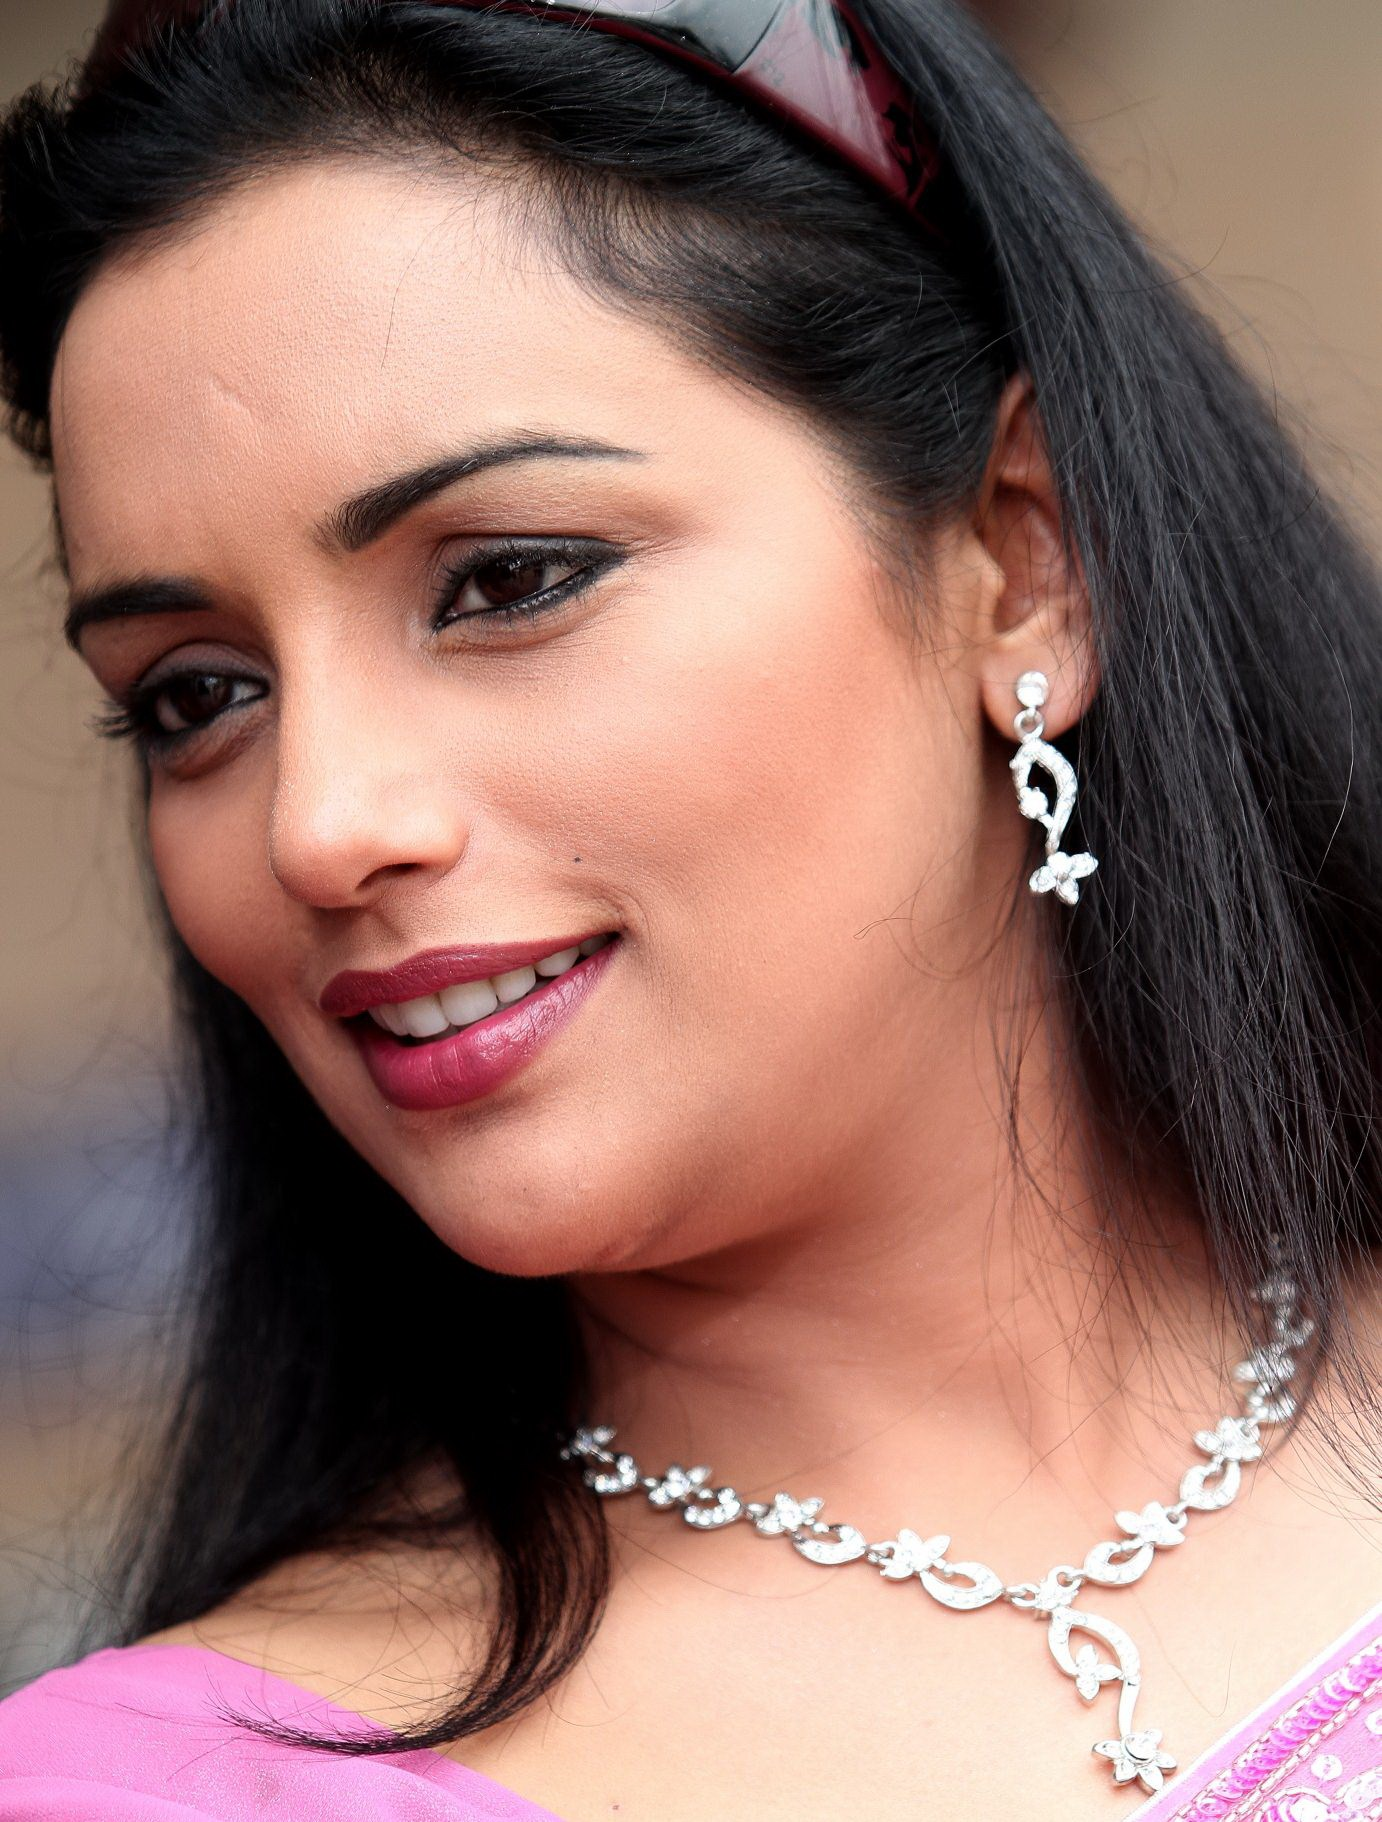 HQ Shweta Menon Wallpapers | File 473.82Kb